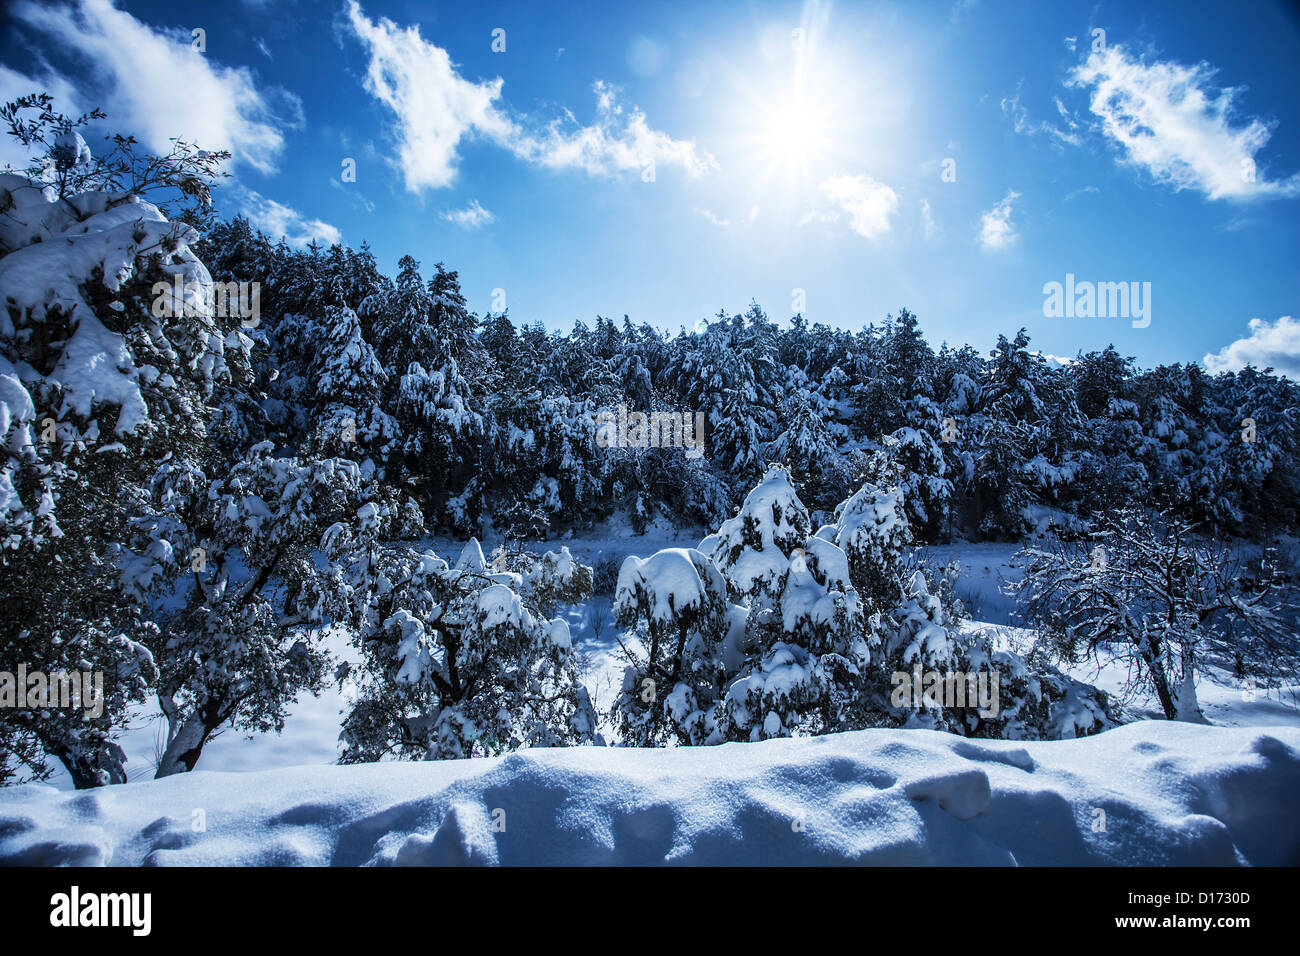 Photo of beautiful snowy forest in the mountain, bright sun shine in blue sky, woods covered white snow - Stock Image